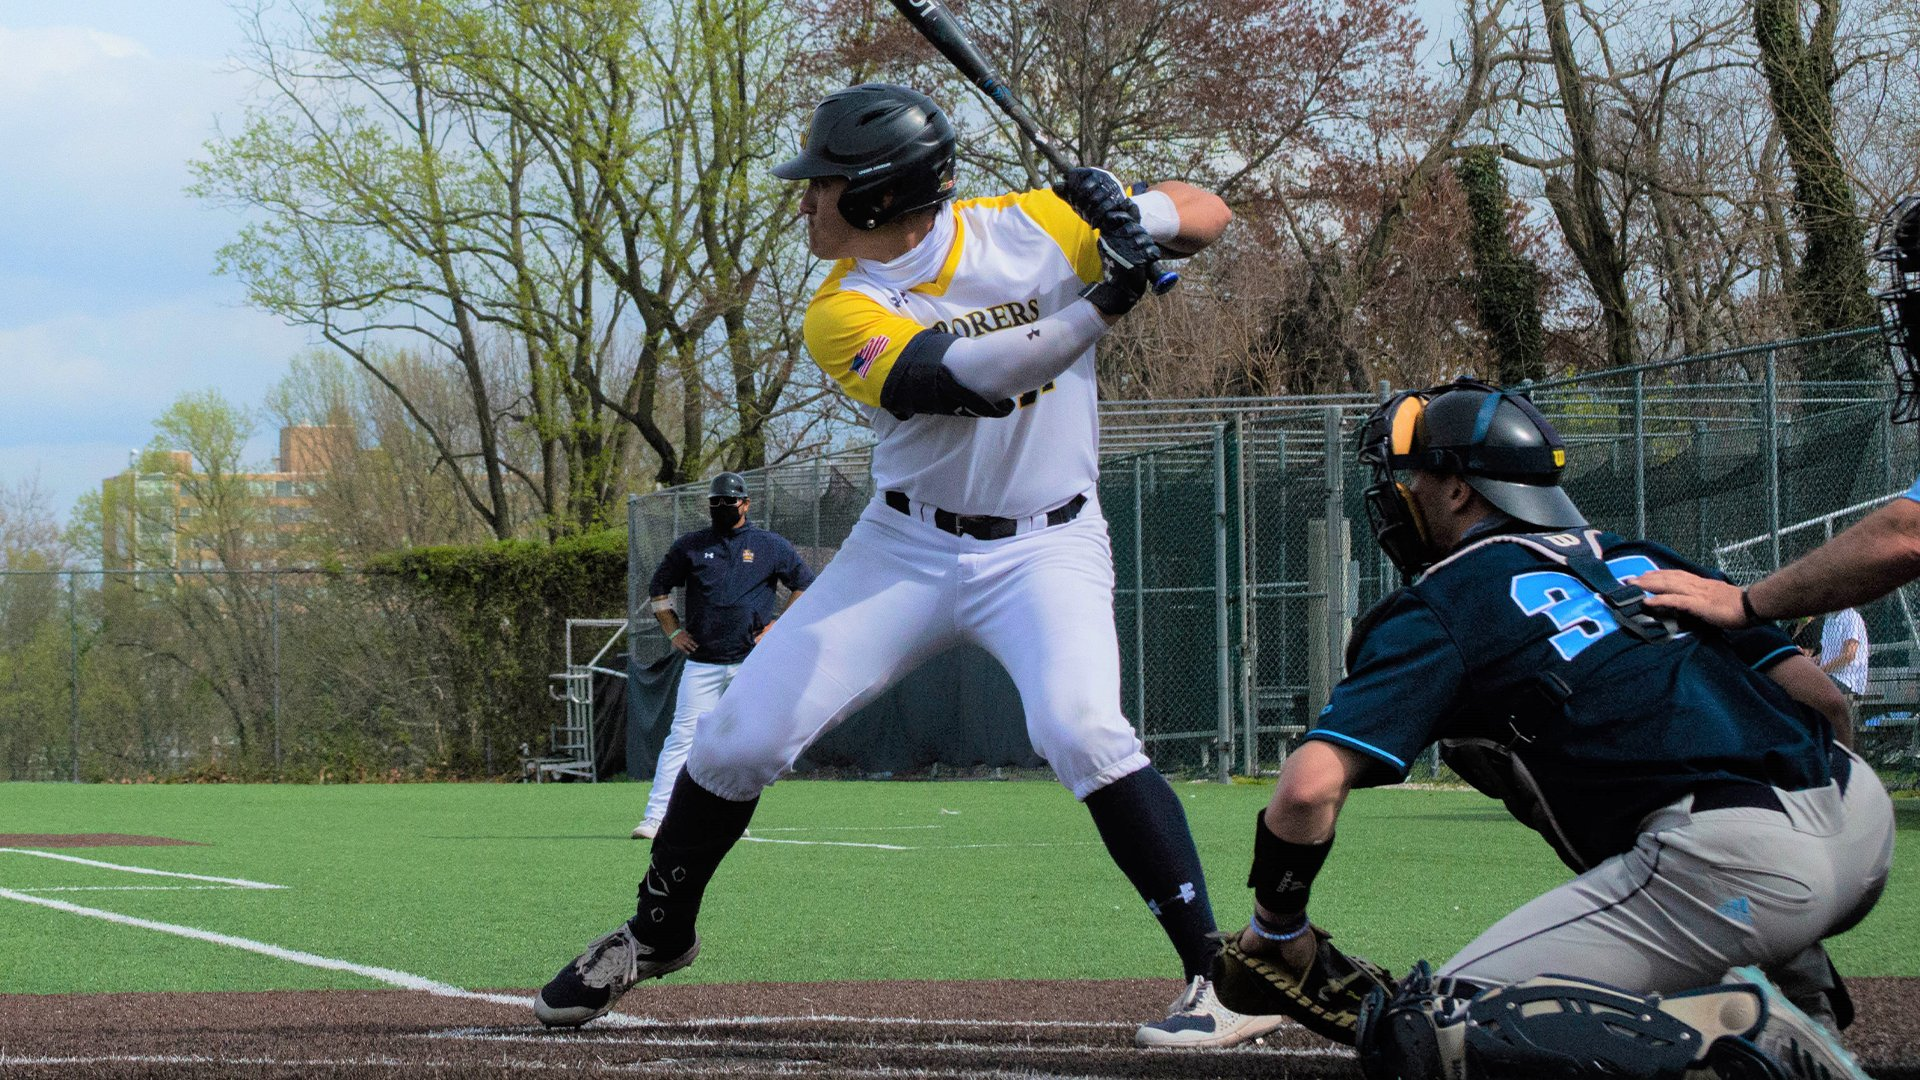 The La Salle Explorers Are The Best Story in All of College Baseball – @JamesSantore